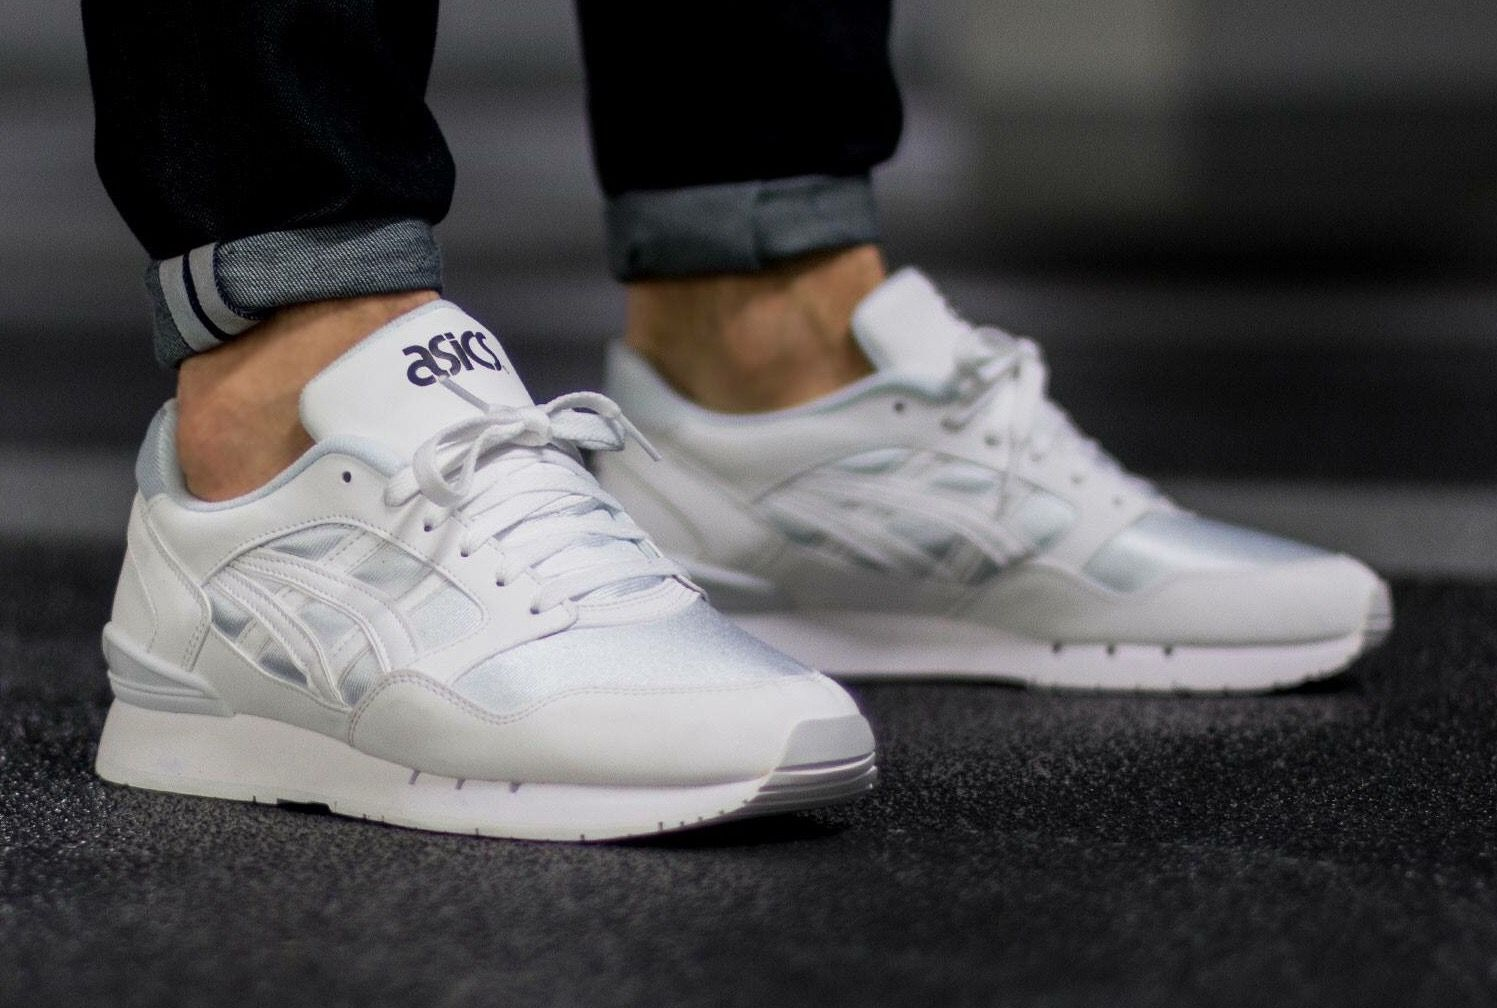 Asics Gel Atlantis: White